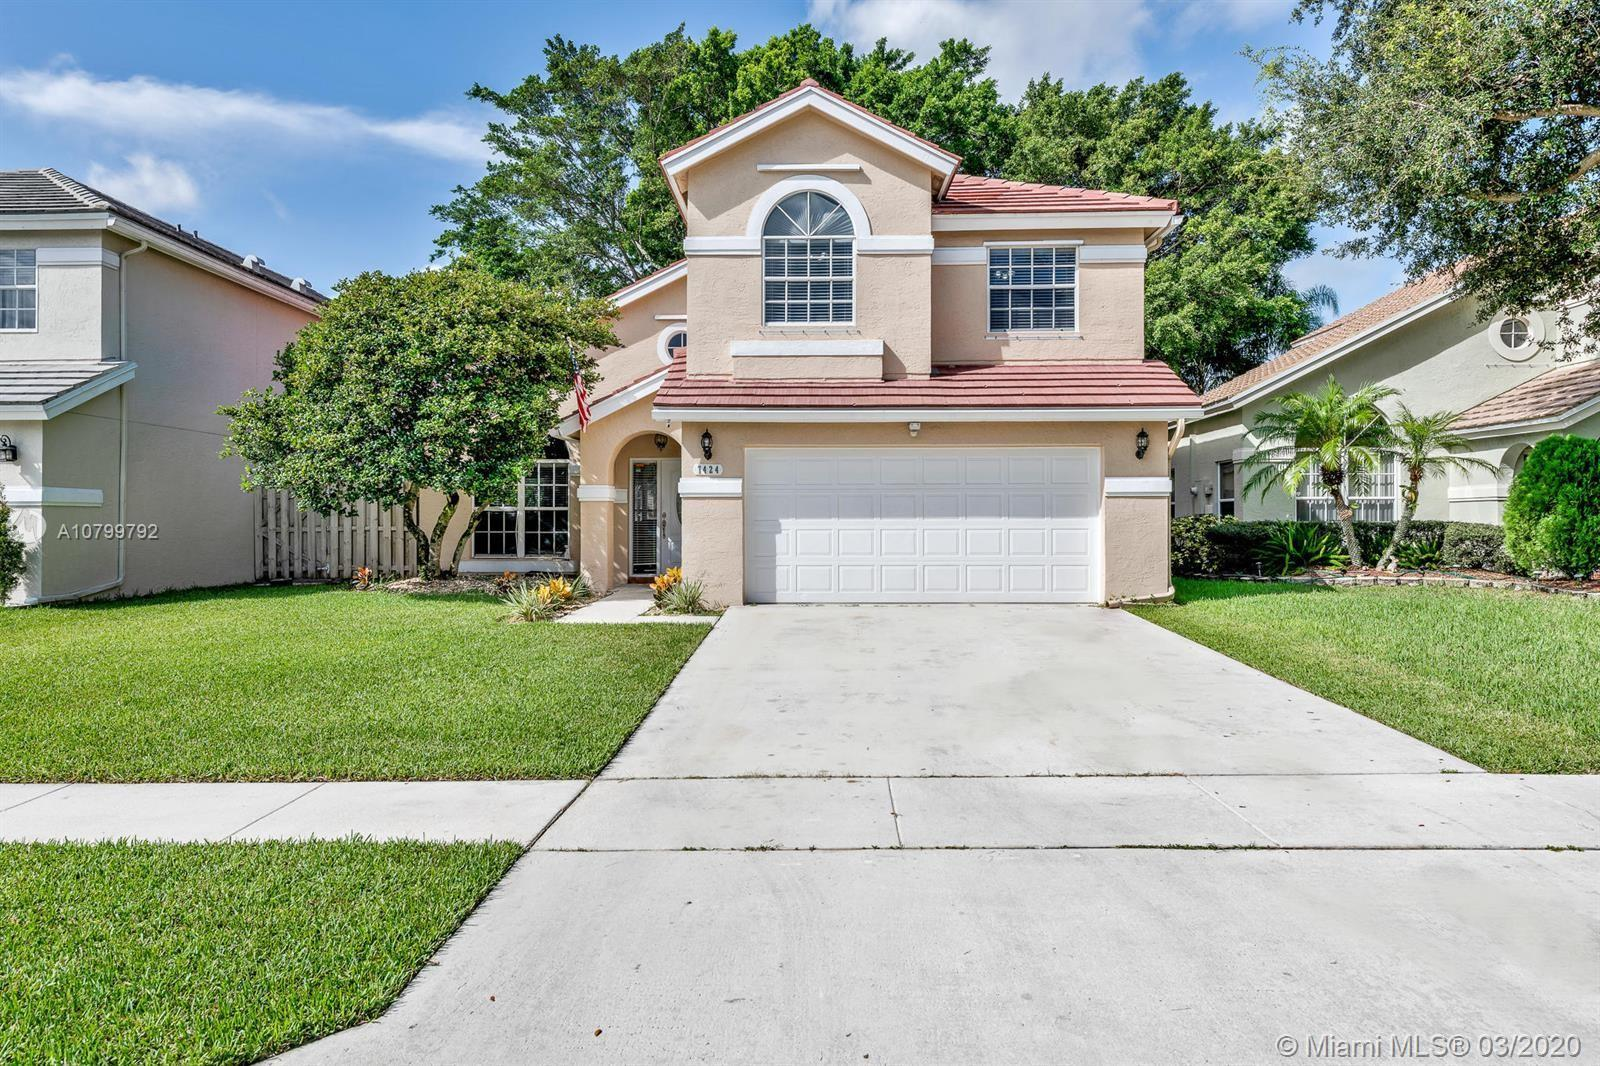 Stunning 2 story pool home with lots of upgrades. Home has 6 inch baseboards and crown molding throu